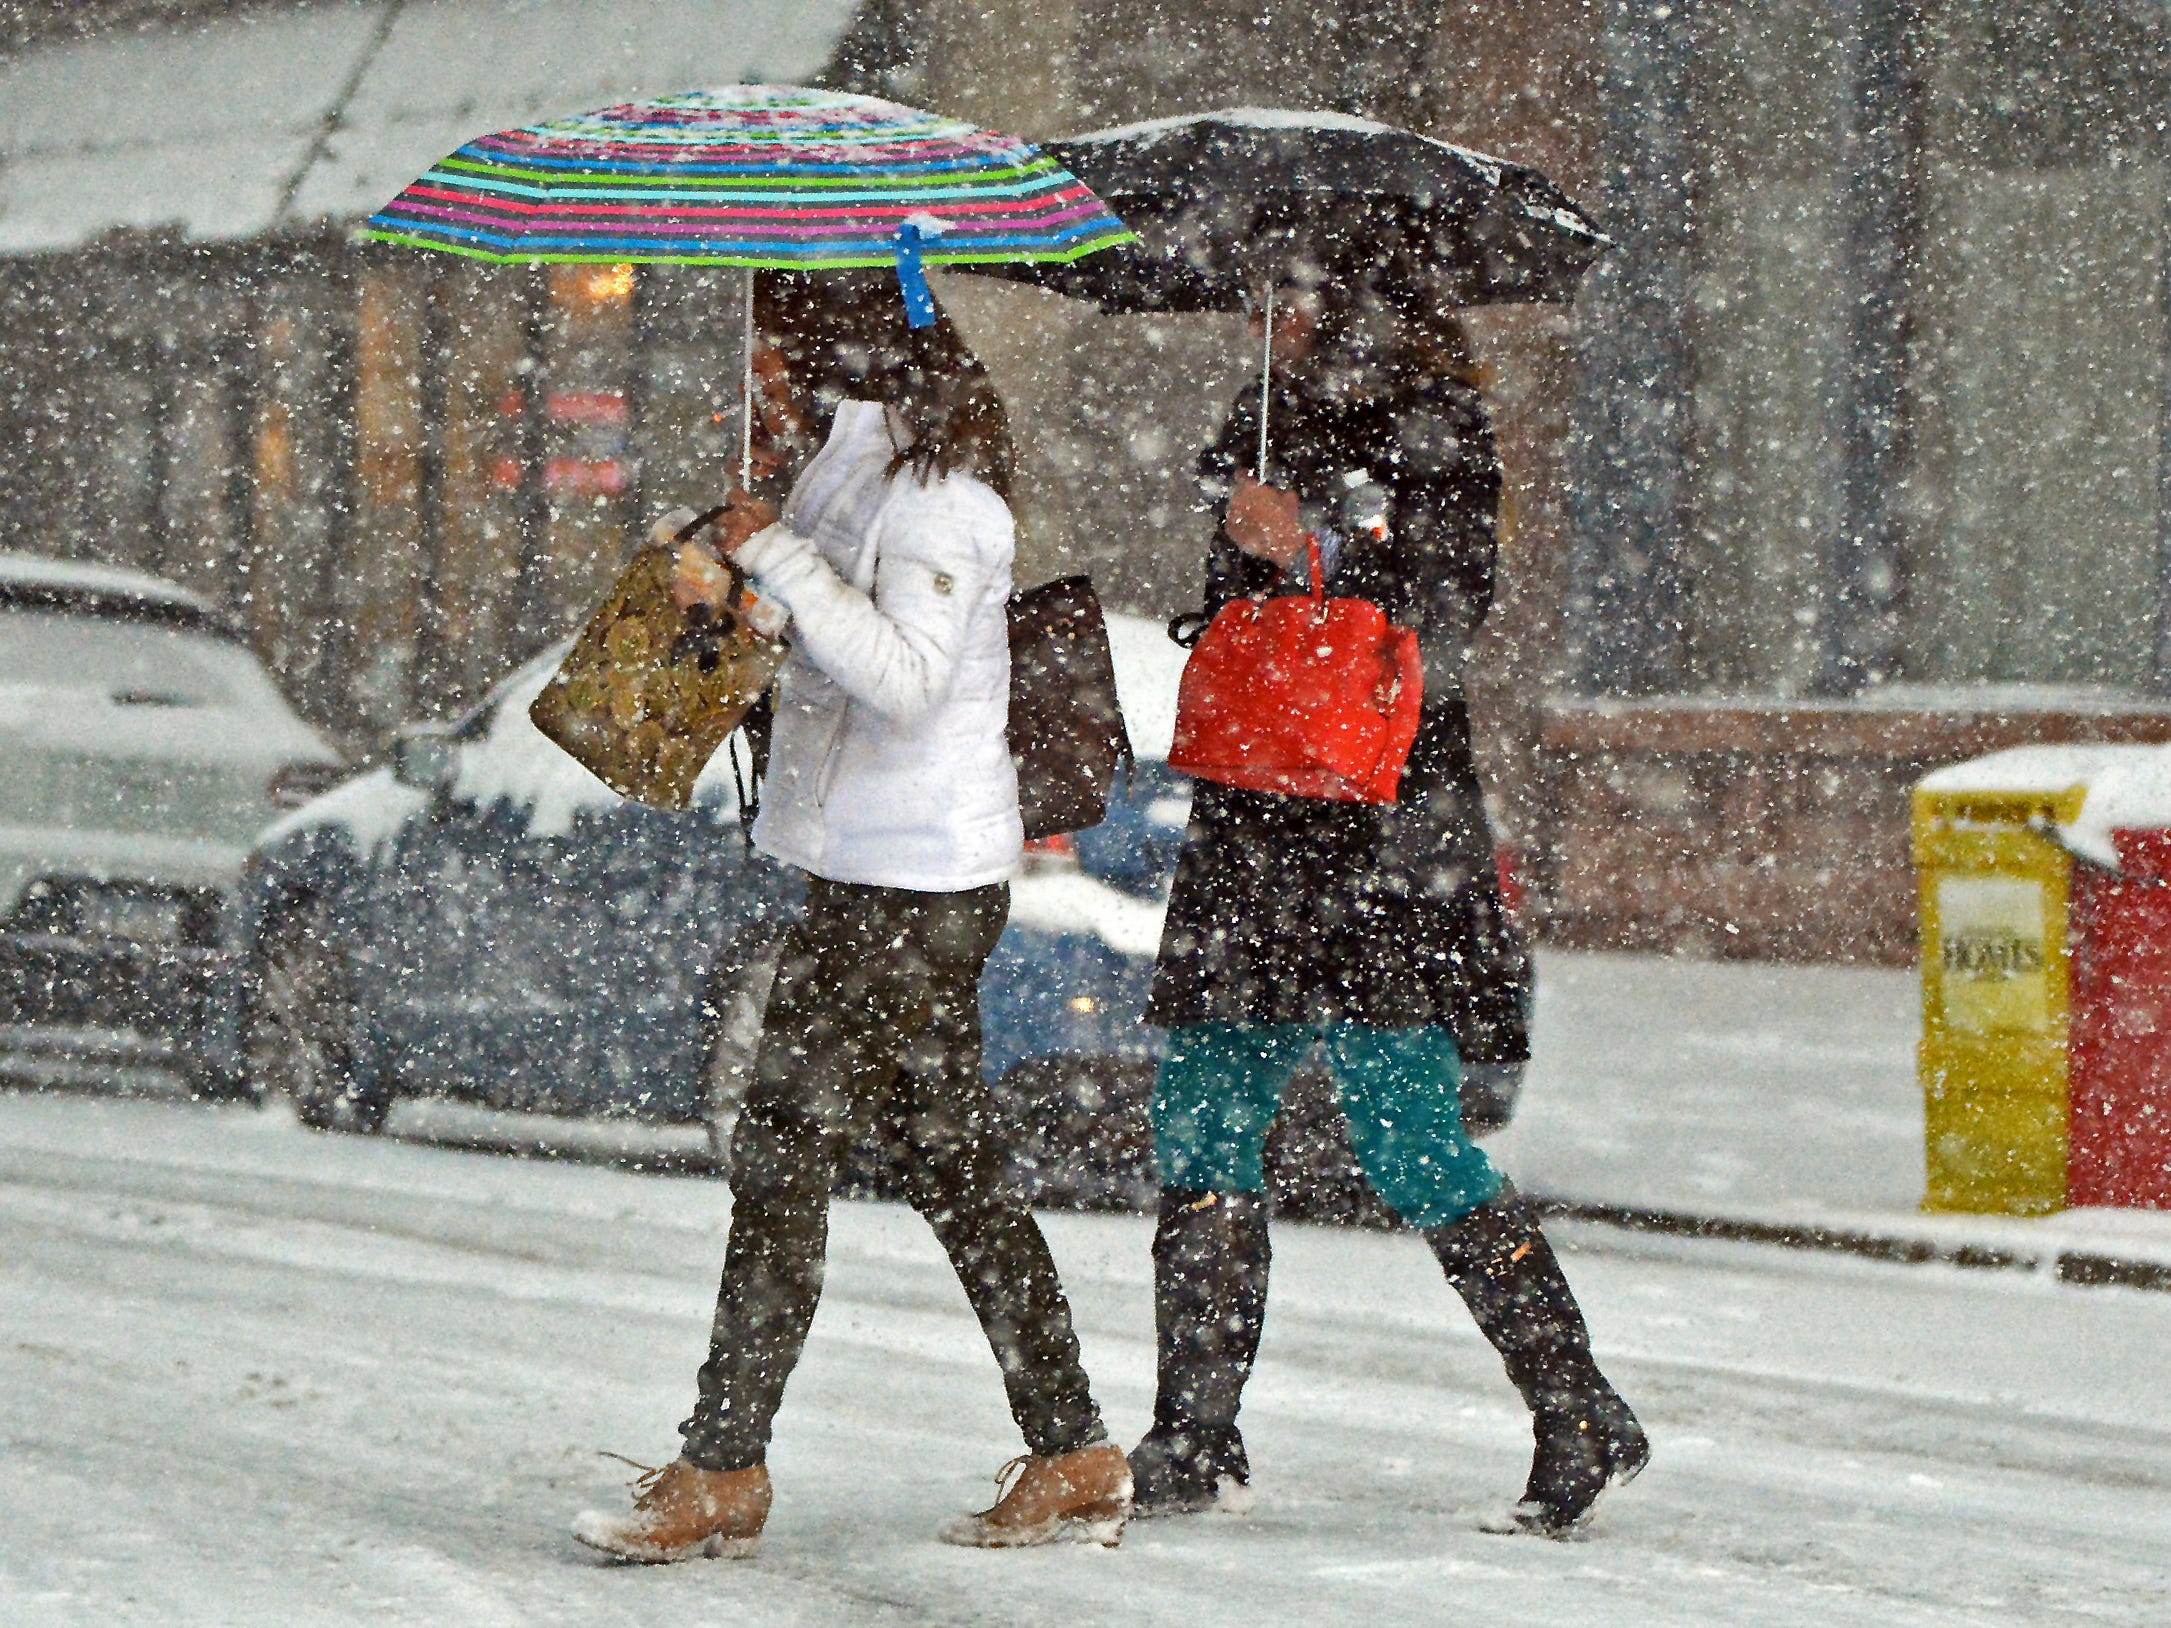 Women were armed with their umbrella's as they cross a street during an autumn snow storm on Nov. 15, 2018, in downtown Scranton, Pa.